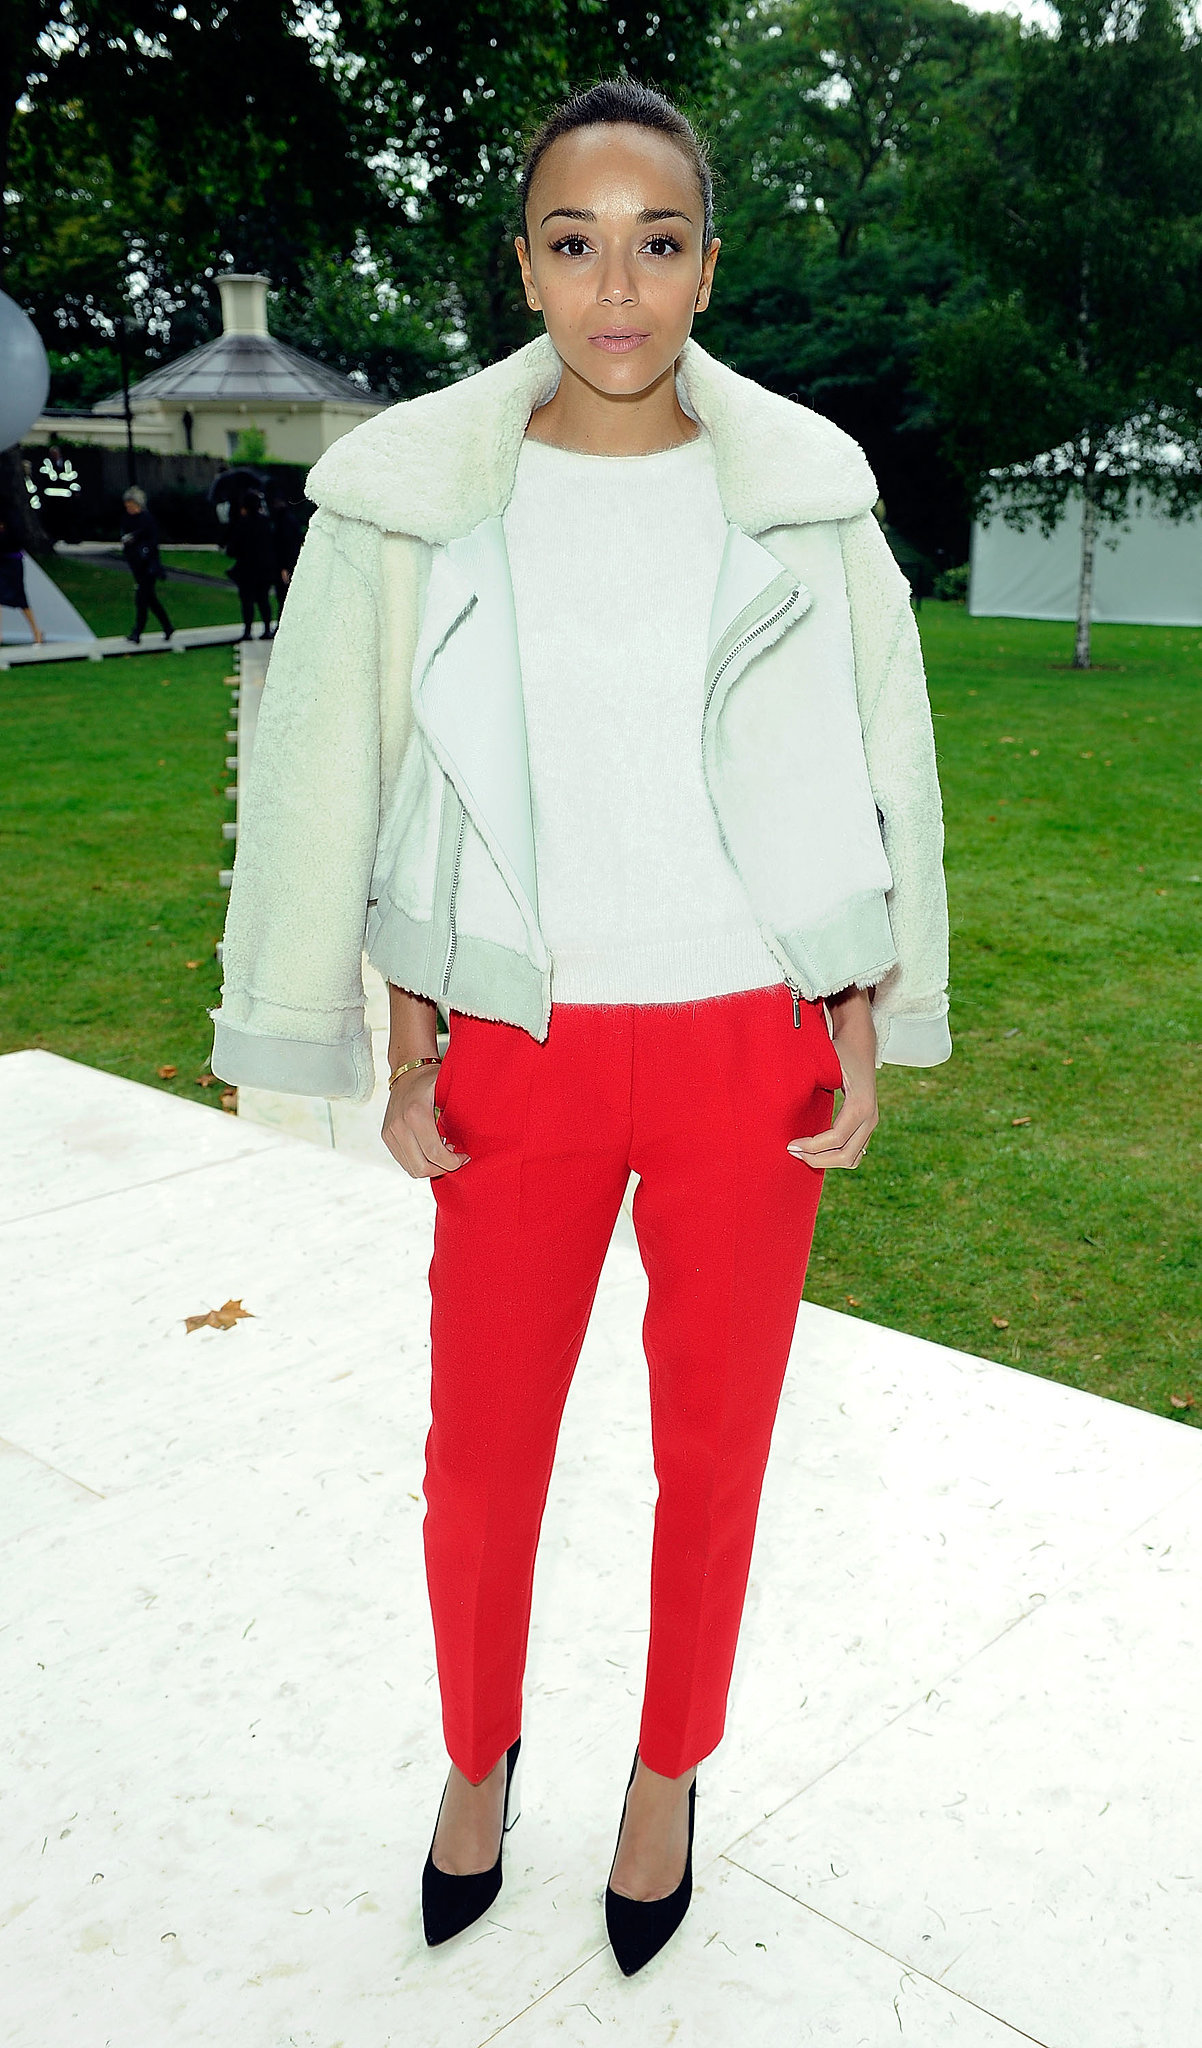 At the Topshop Unique show during London Fashion Week Spring/Summer 2014, Ashley Madekwe balanced her bright red trousers with a neutral blouse and coordinating shearling jacket. Where to Wear: A concert.